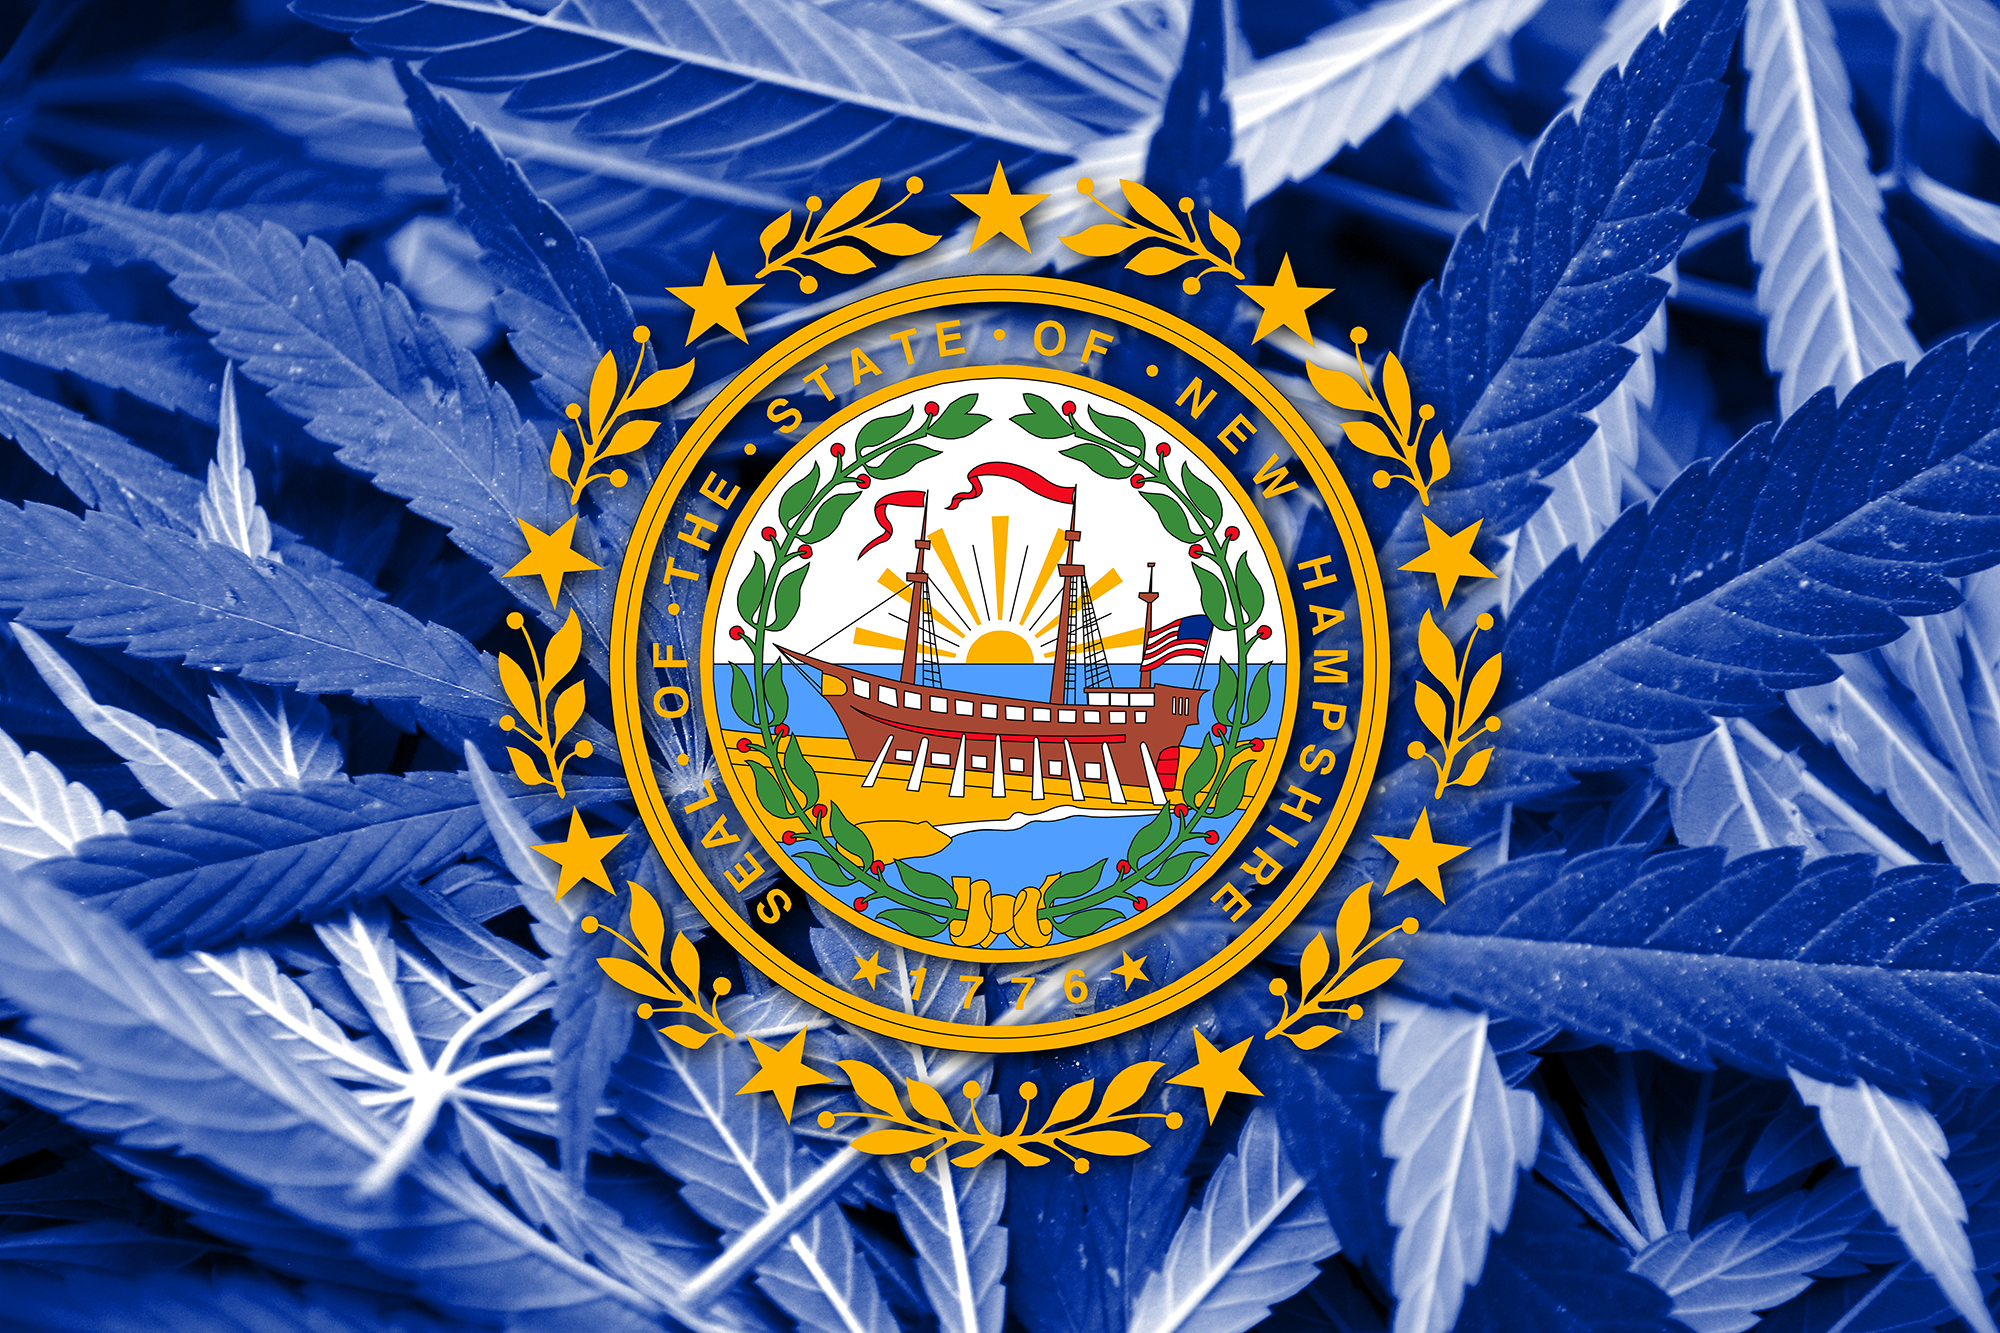 New Hampshire Nears Legalization of Recreational Marijuana